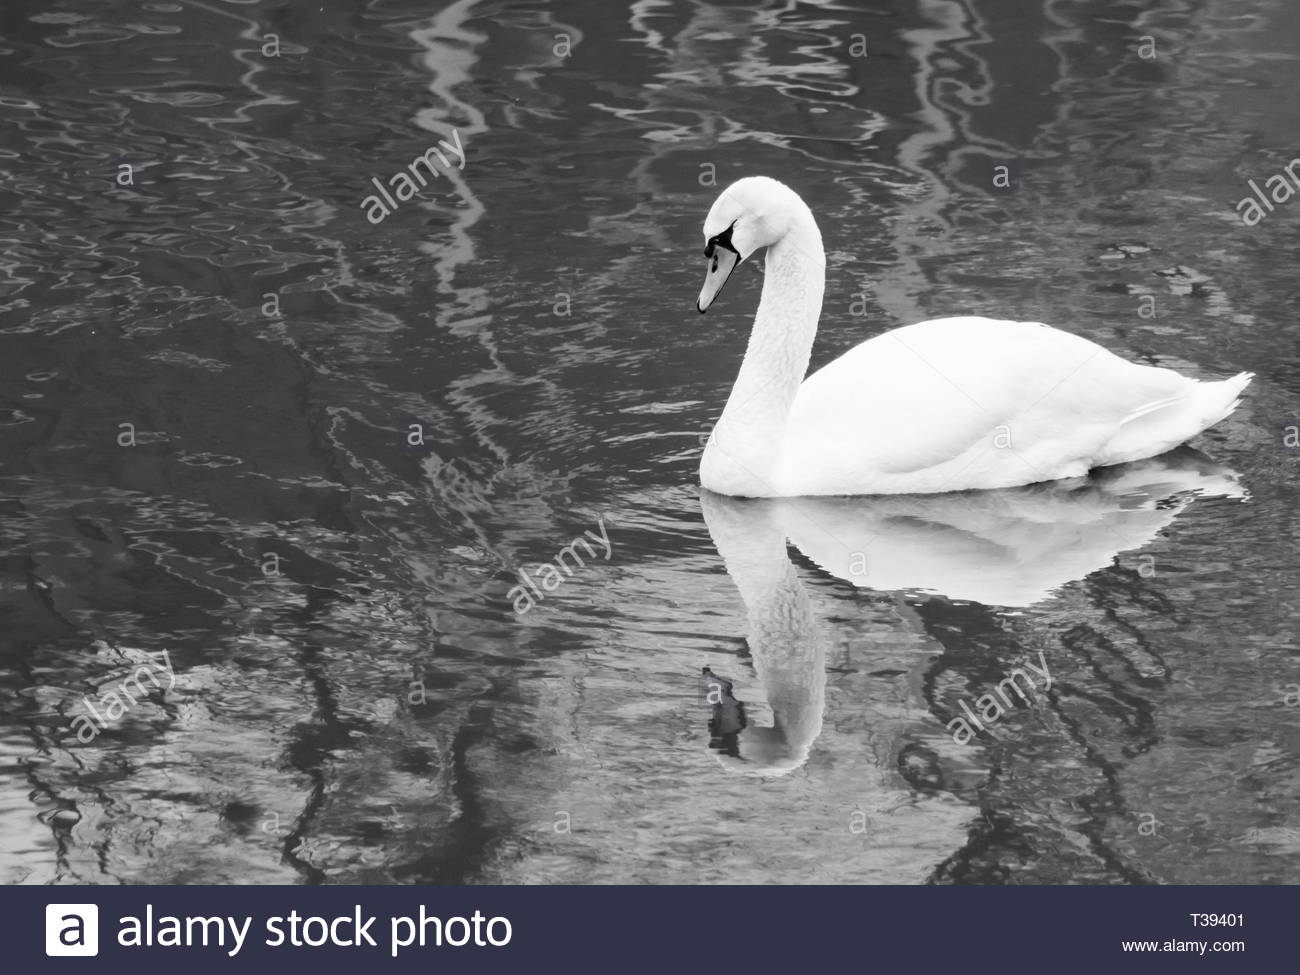 Artistic black and white photo of a white swan swimming alone in a lake. Concept of sadness, loneliness and misery. Stock Photo